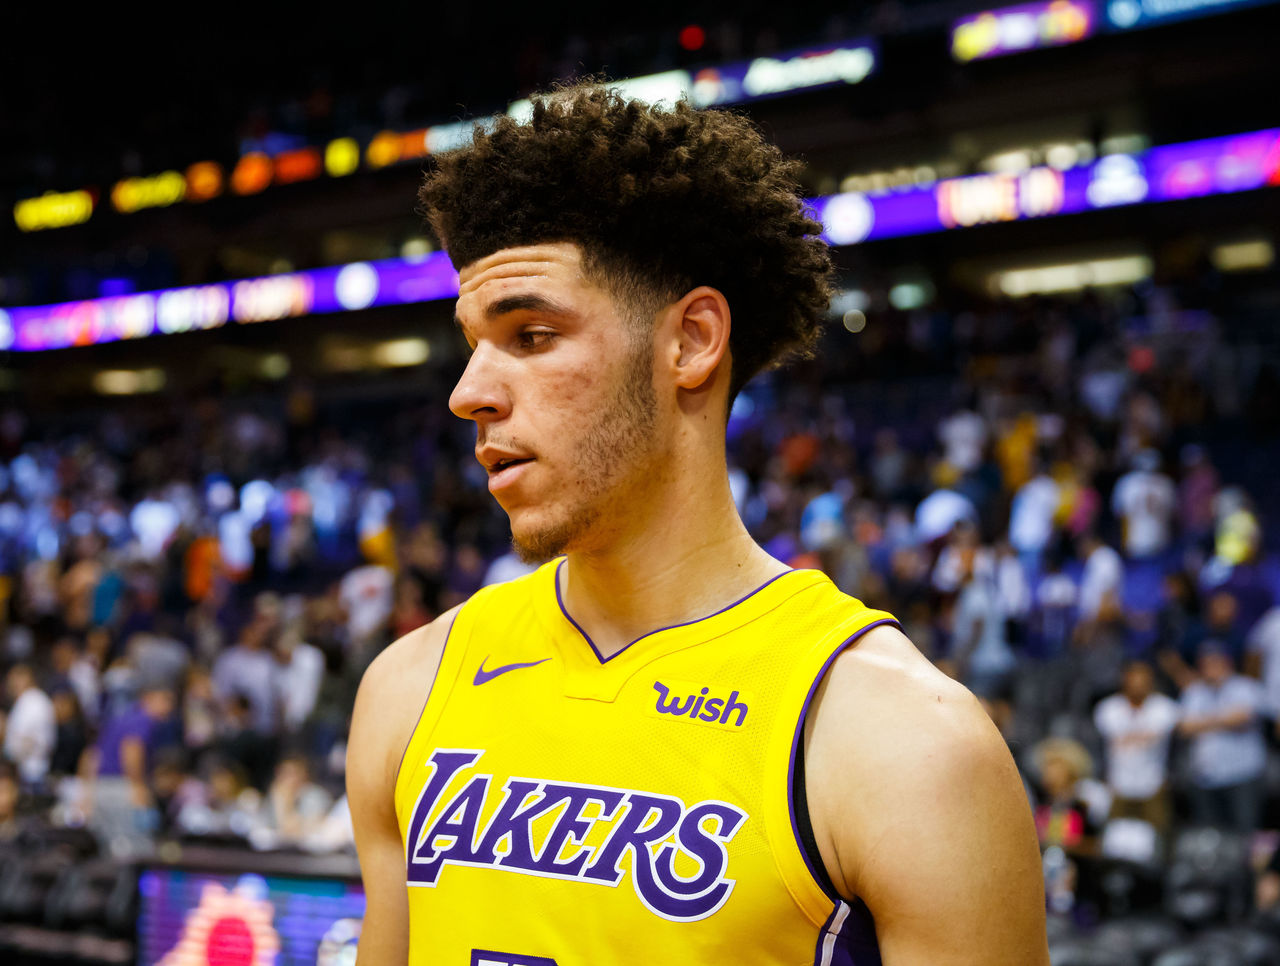 Cropped 2017 10 21t062140z 37686638 nocid rtrmadp 3 nba los angeles lakers at phoenix suns